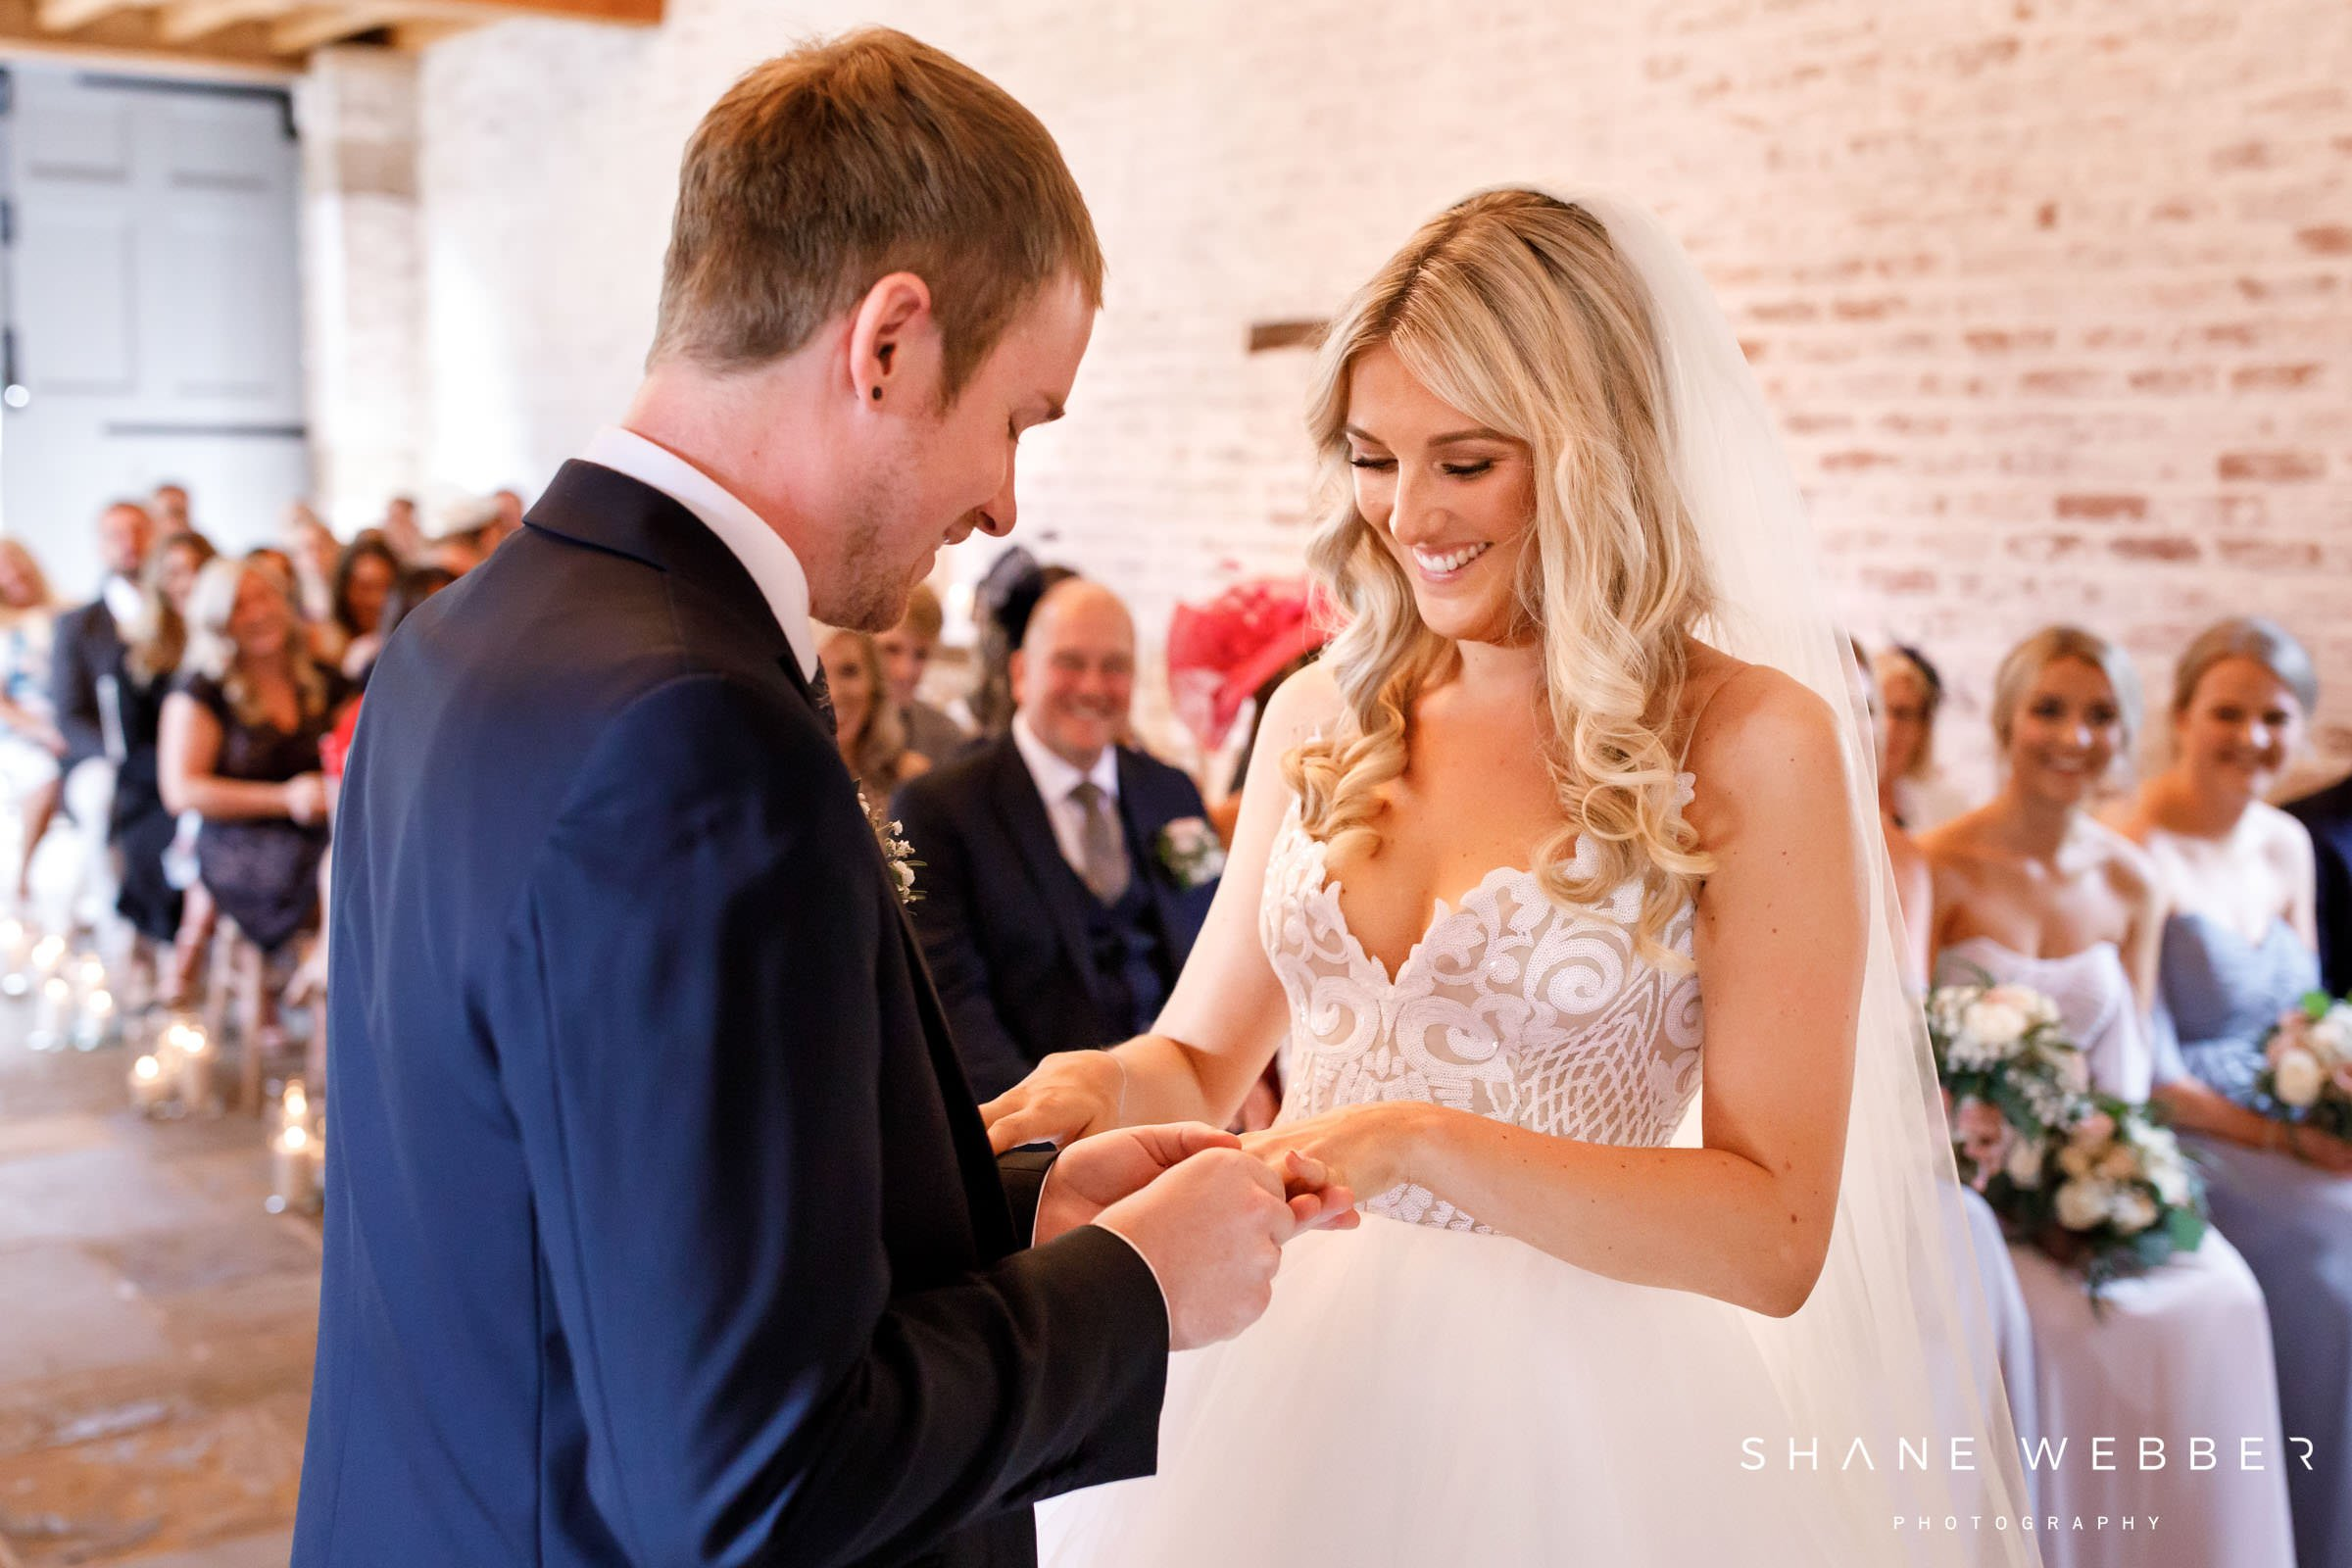 image of groom placing ring on brides finger